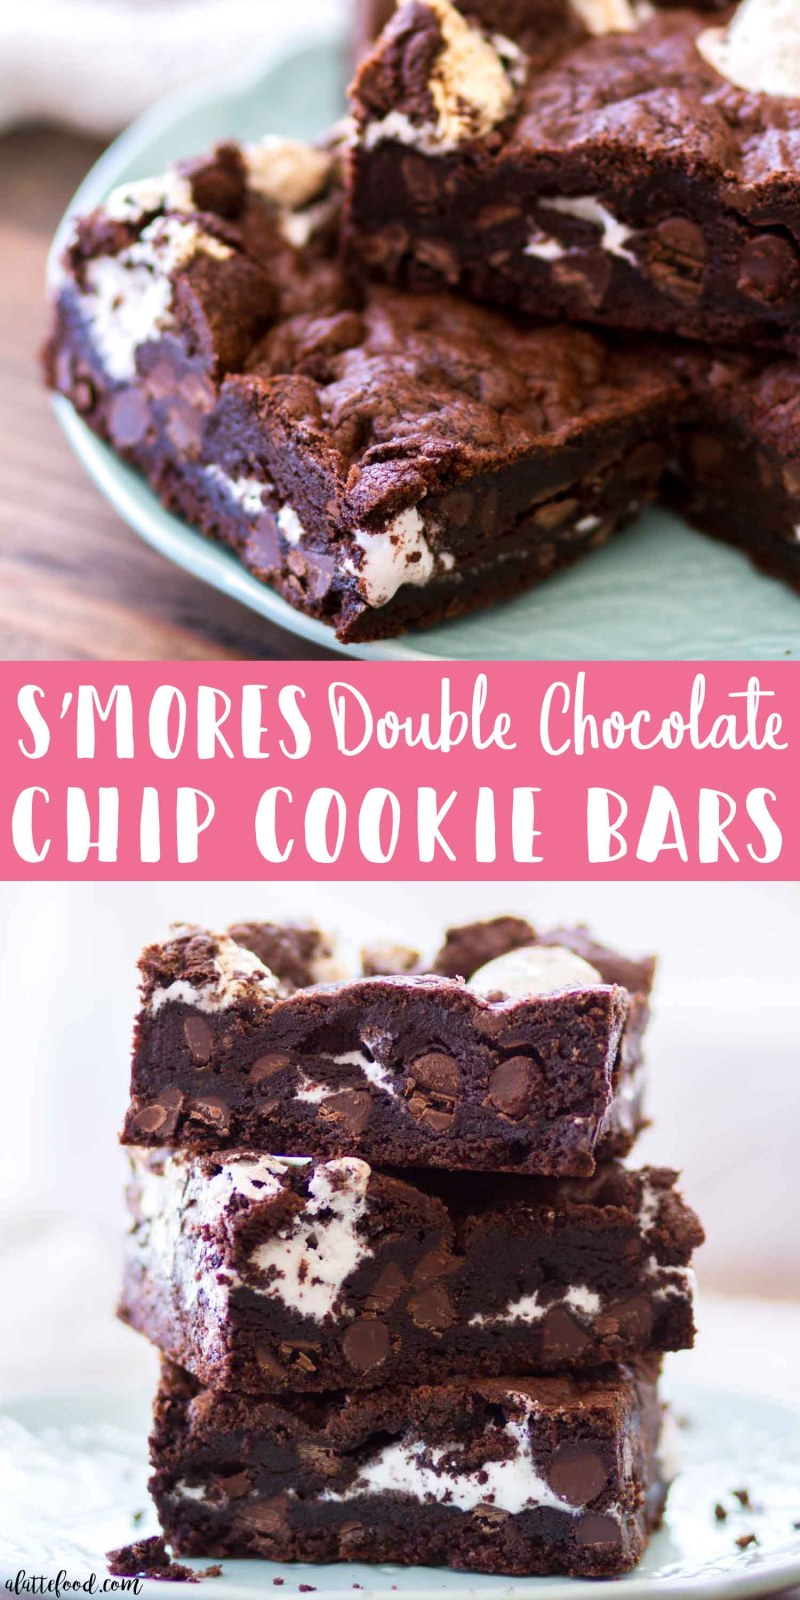 S'mores Double Chocolate Chip Cookie Bars collage photo with text